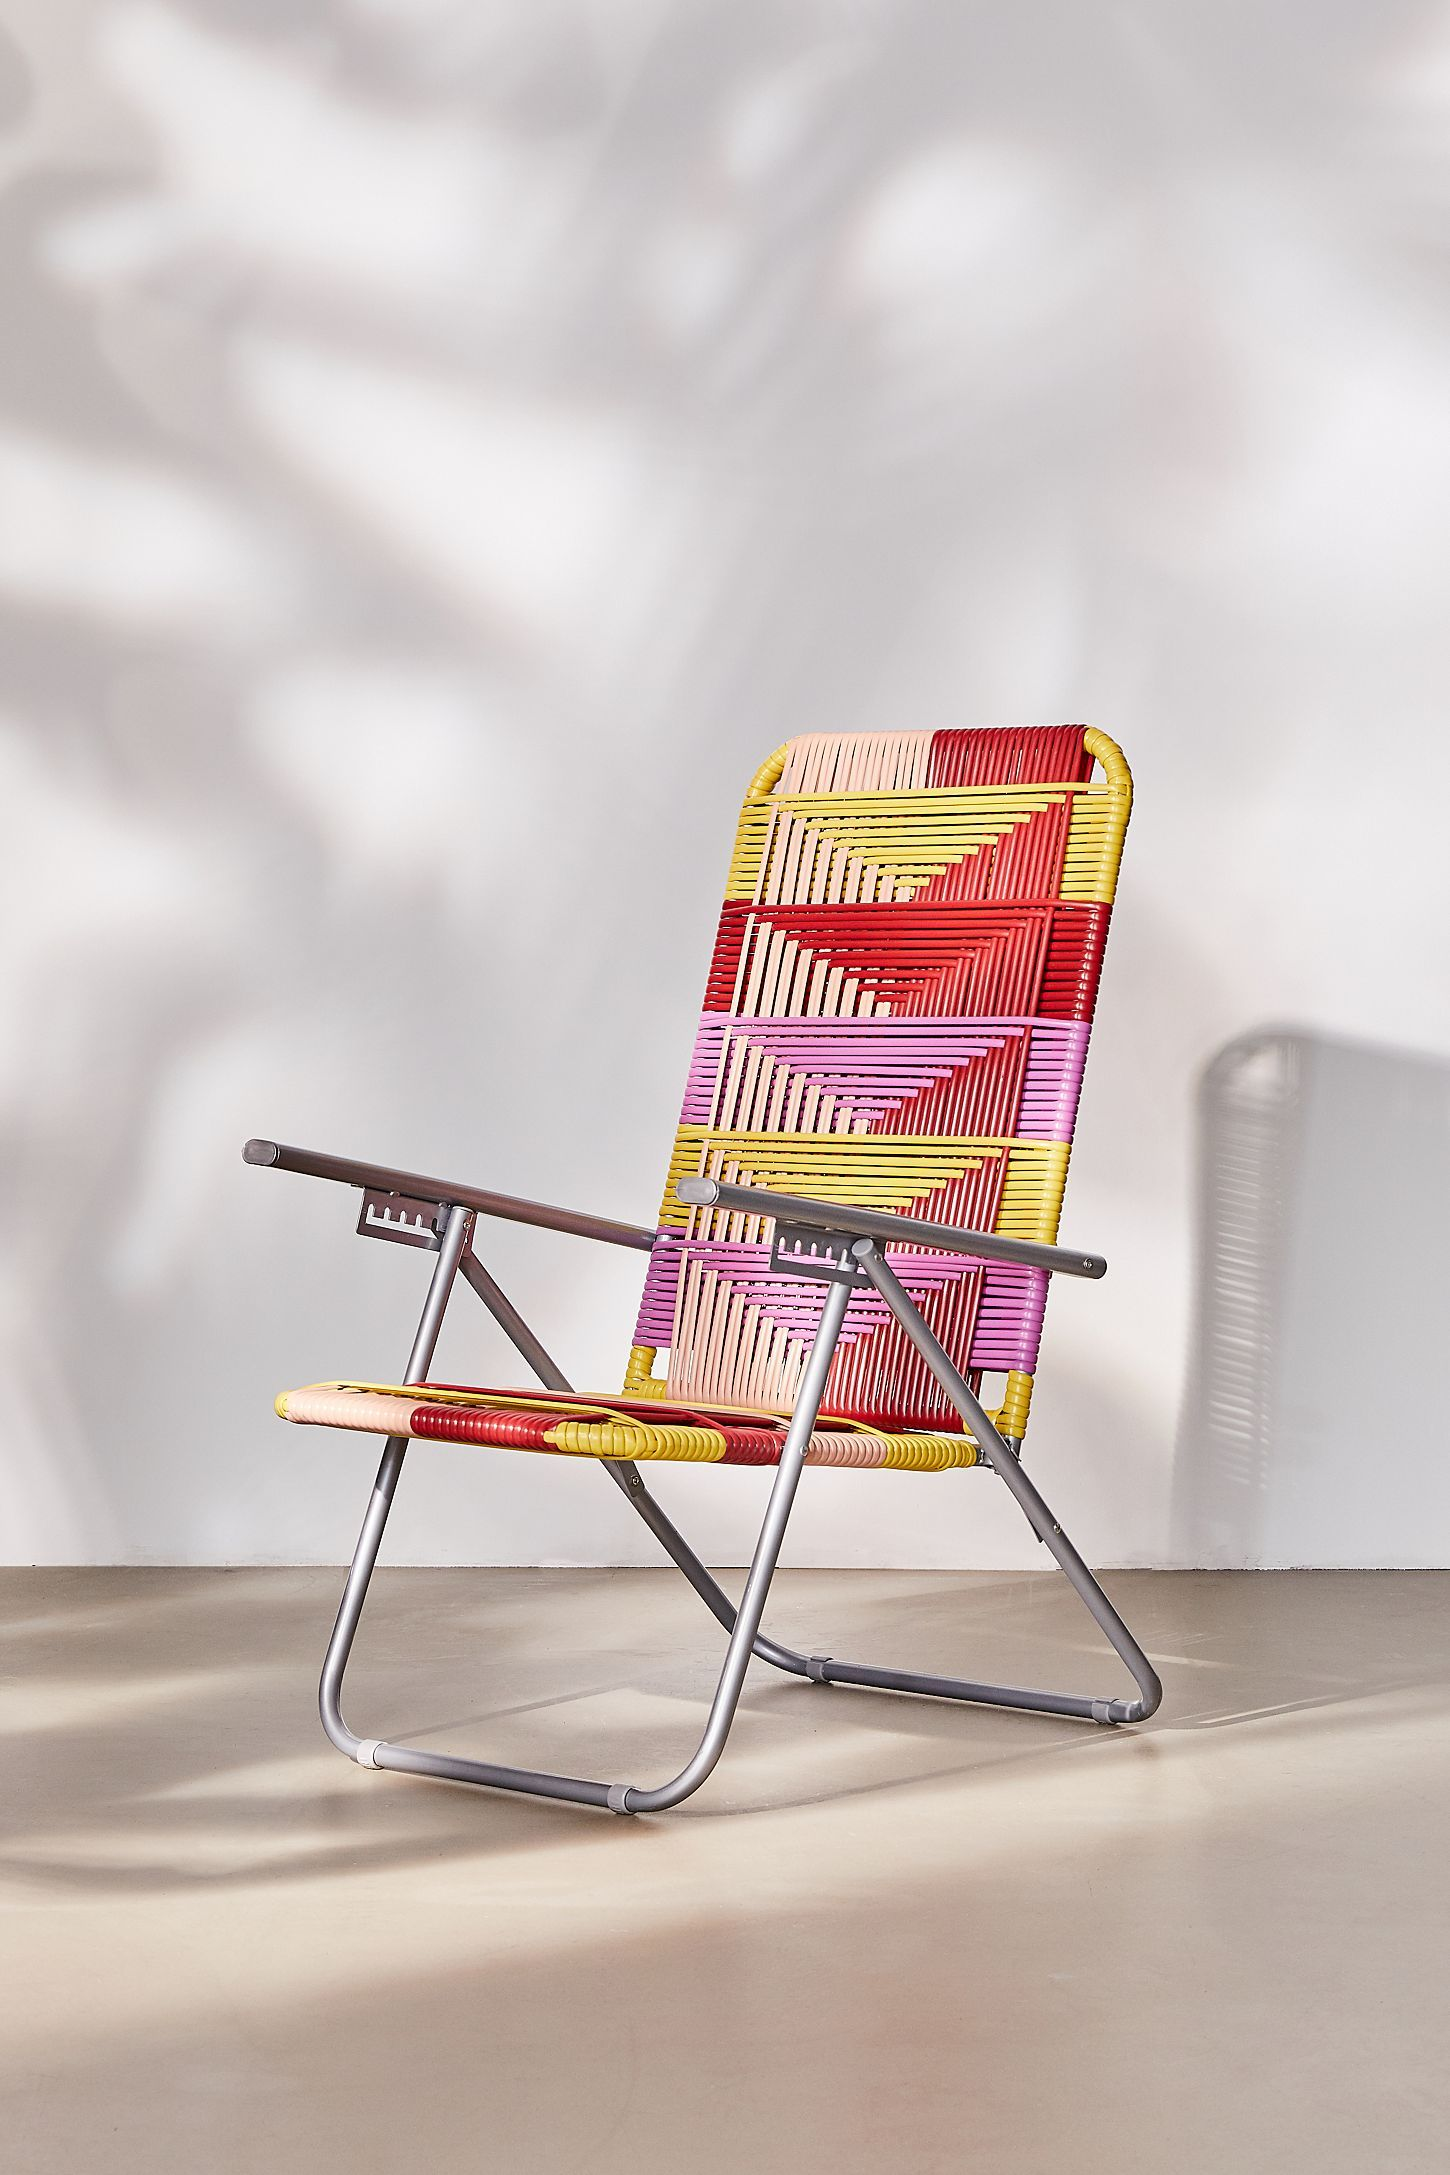 Woven Lawn Chair Woven Outdoor Lawn Chair In 2019 Pool Lawn Chairs Outdoor